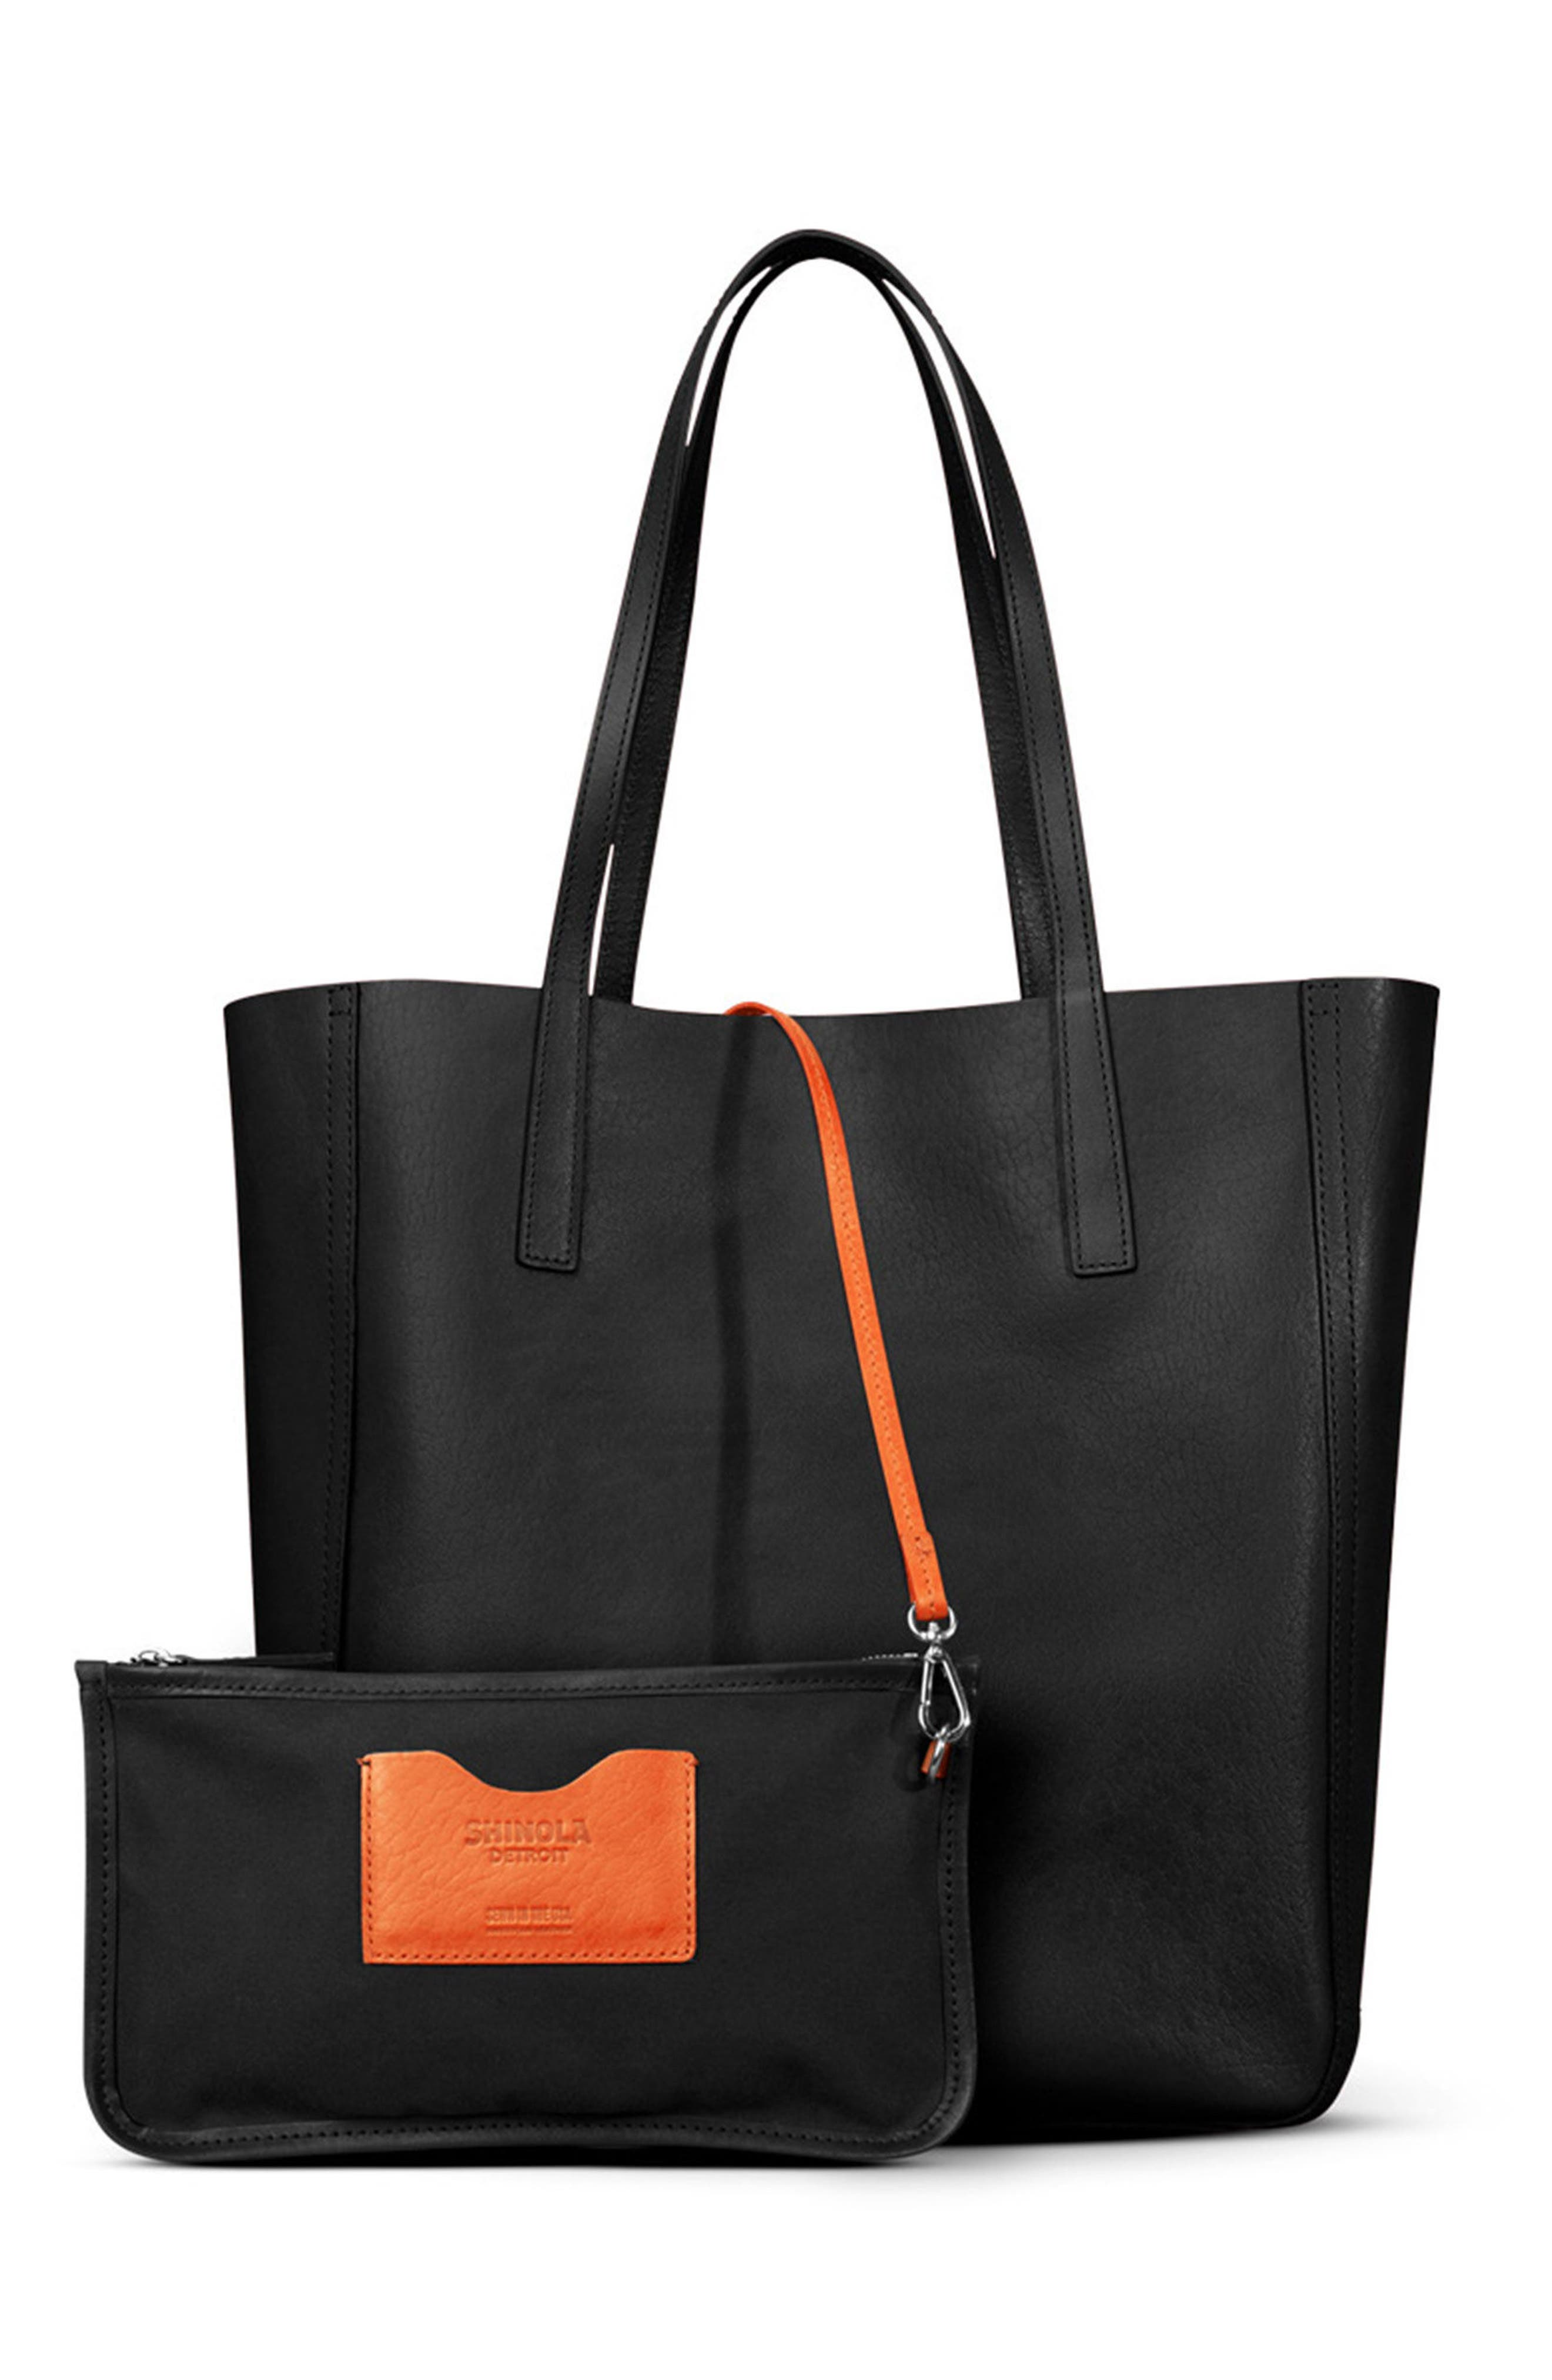 MEDIUM LEATHER SHOPPER - BLACK